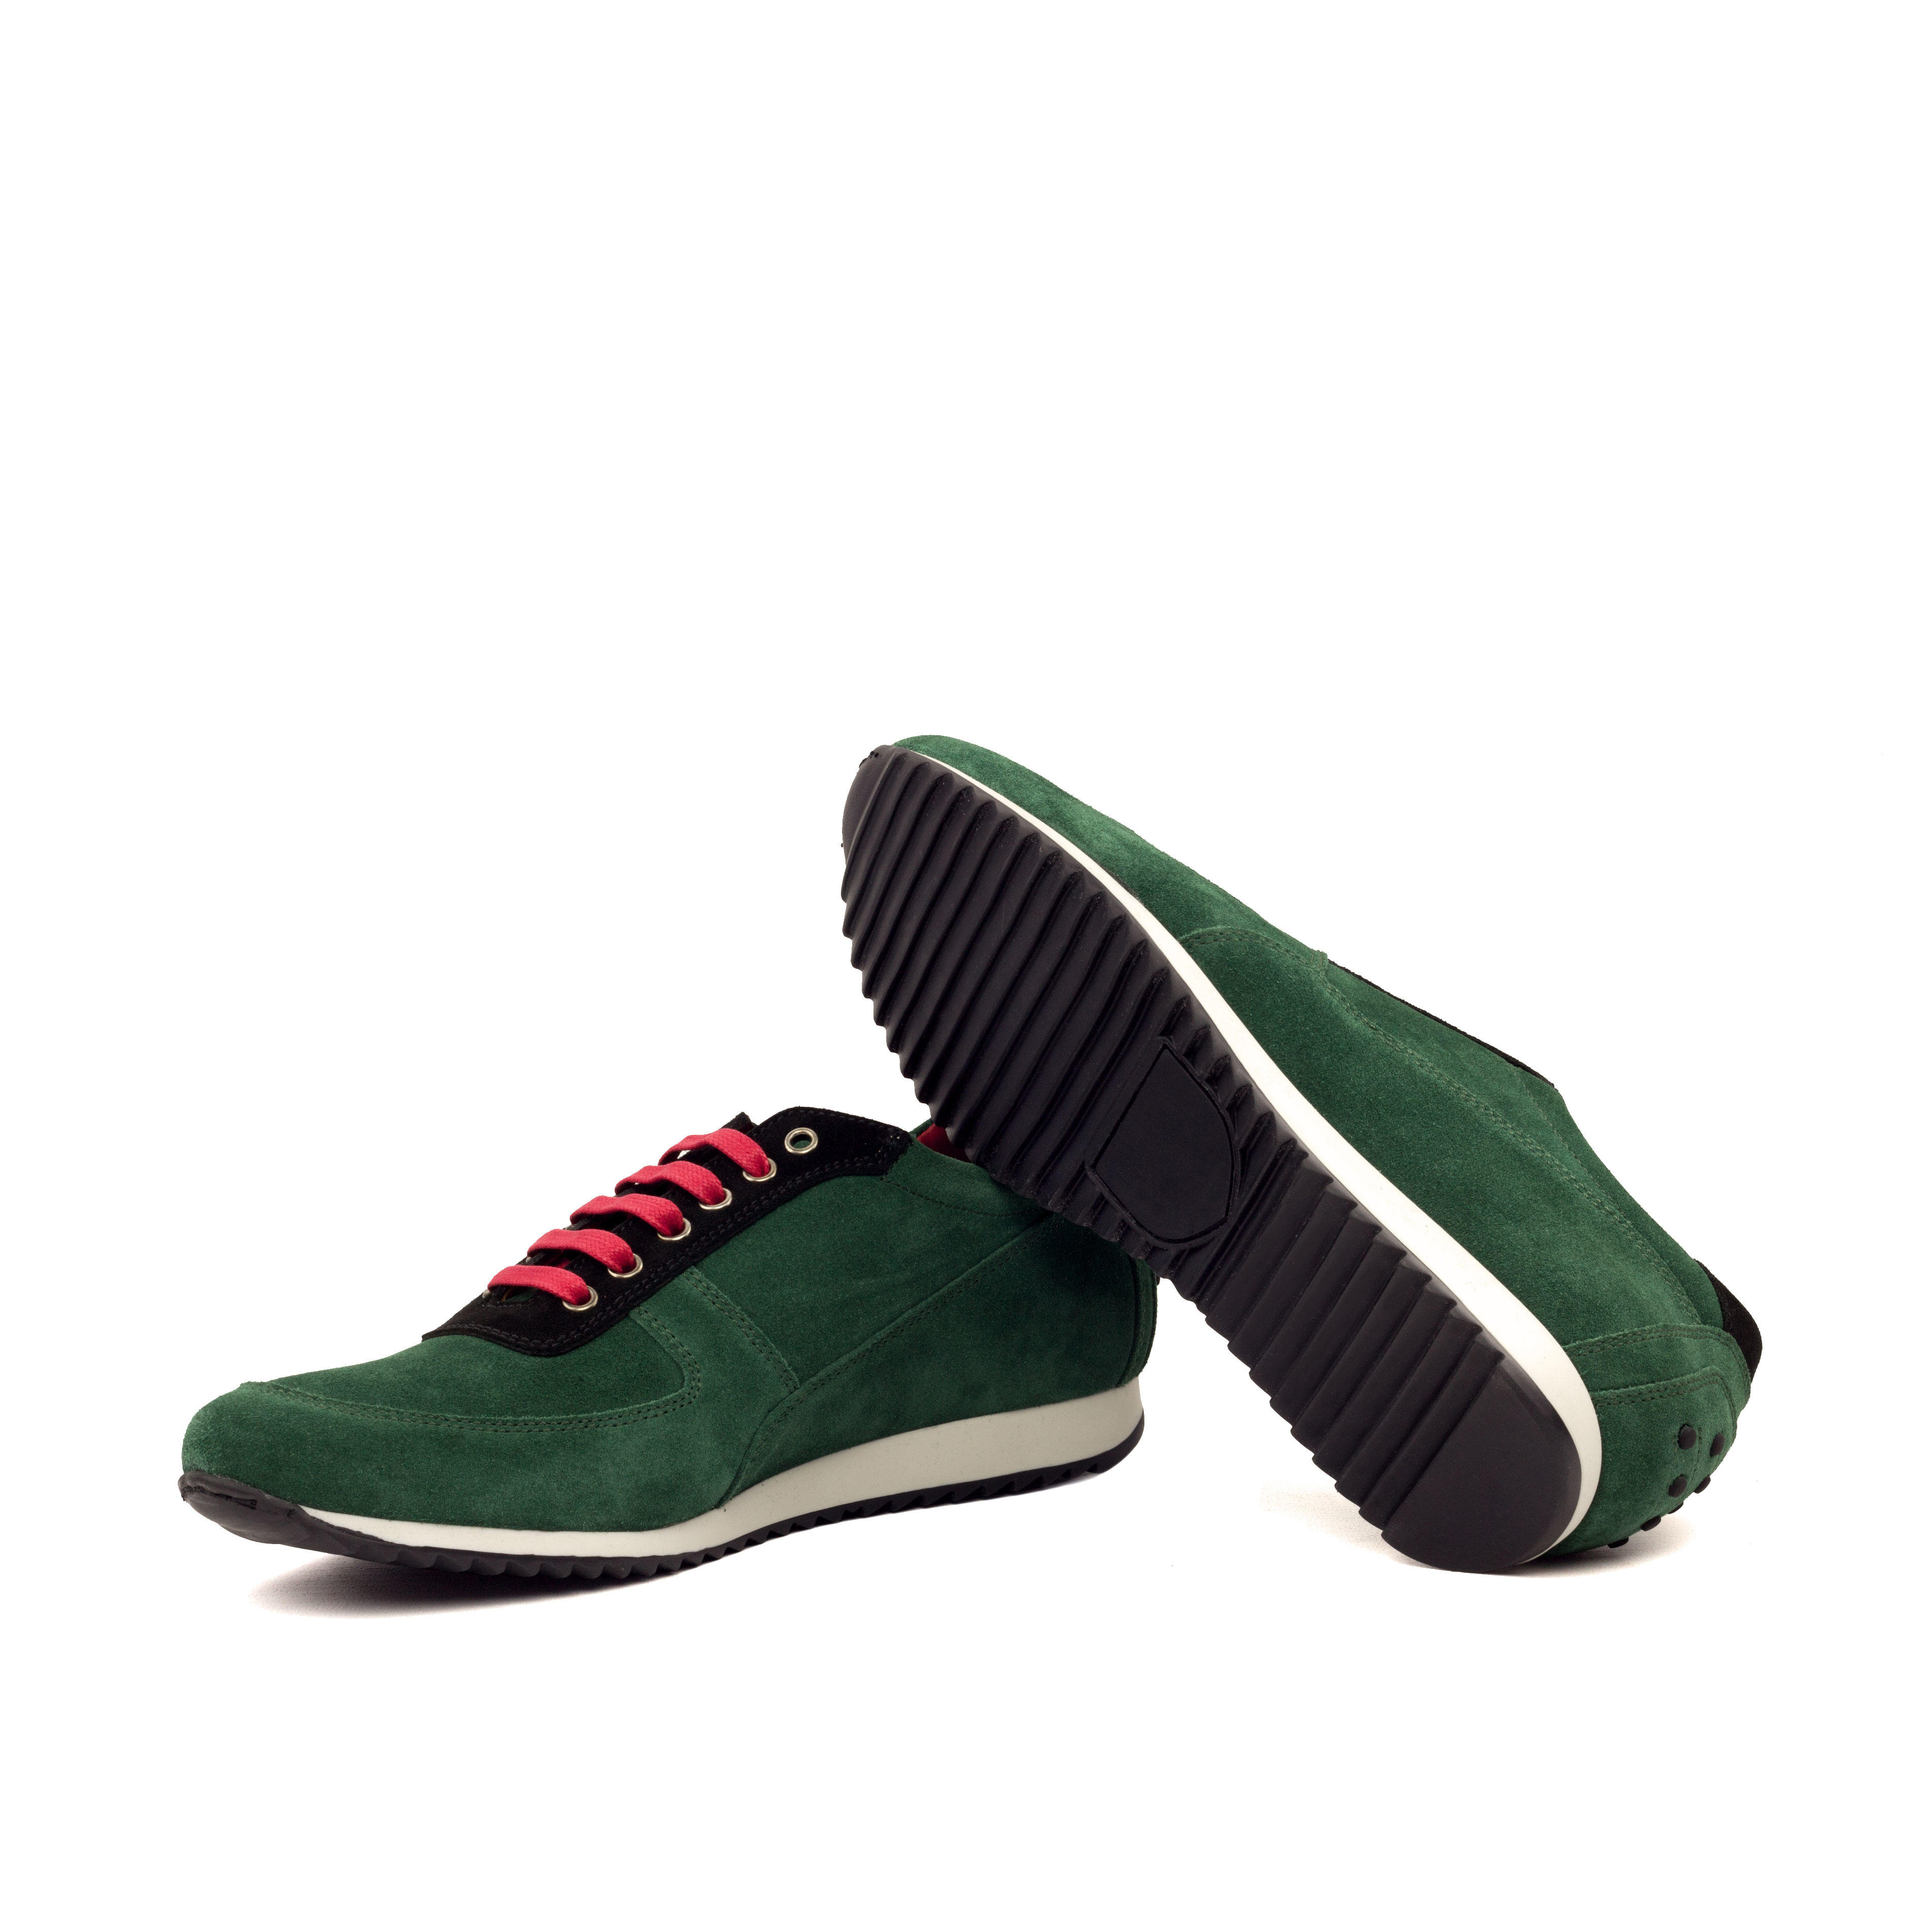 MANOR OF LONDON 'The Runner' Green & Black Suede Trainer Luxury Custom Initials Monogrammed Bottom Side View